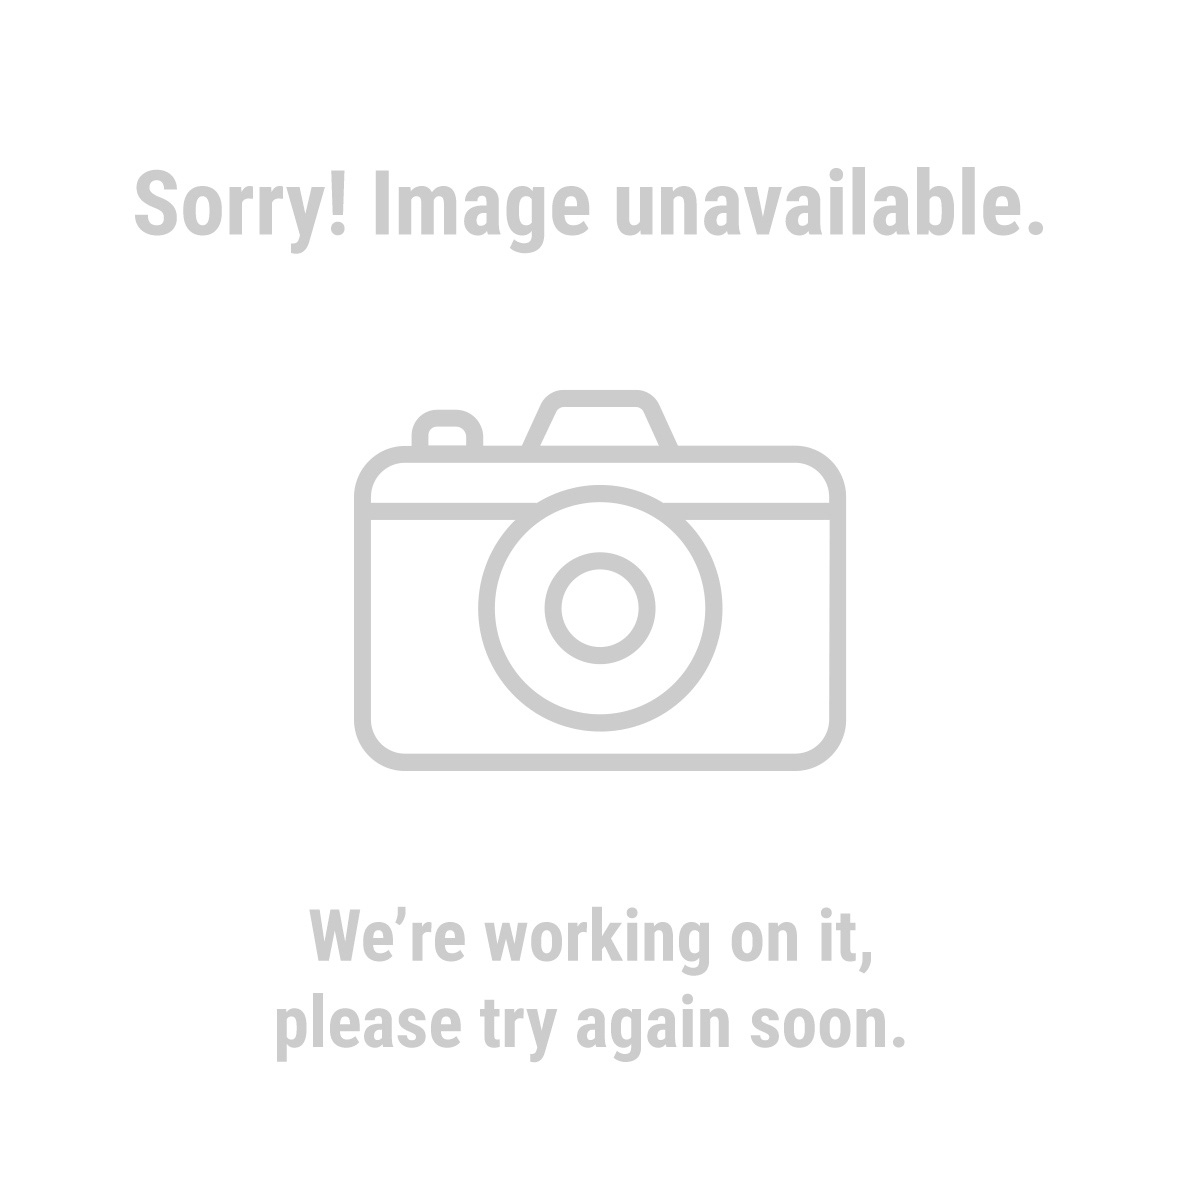 Pittsburgh 1028 Multipurpose Angle Finder